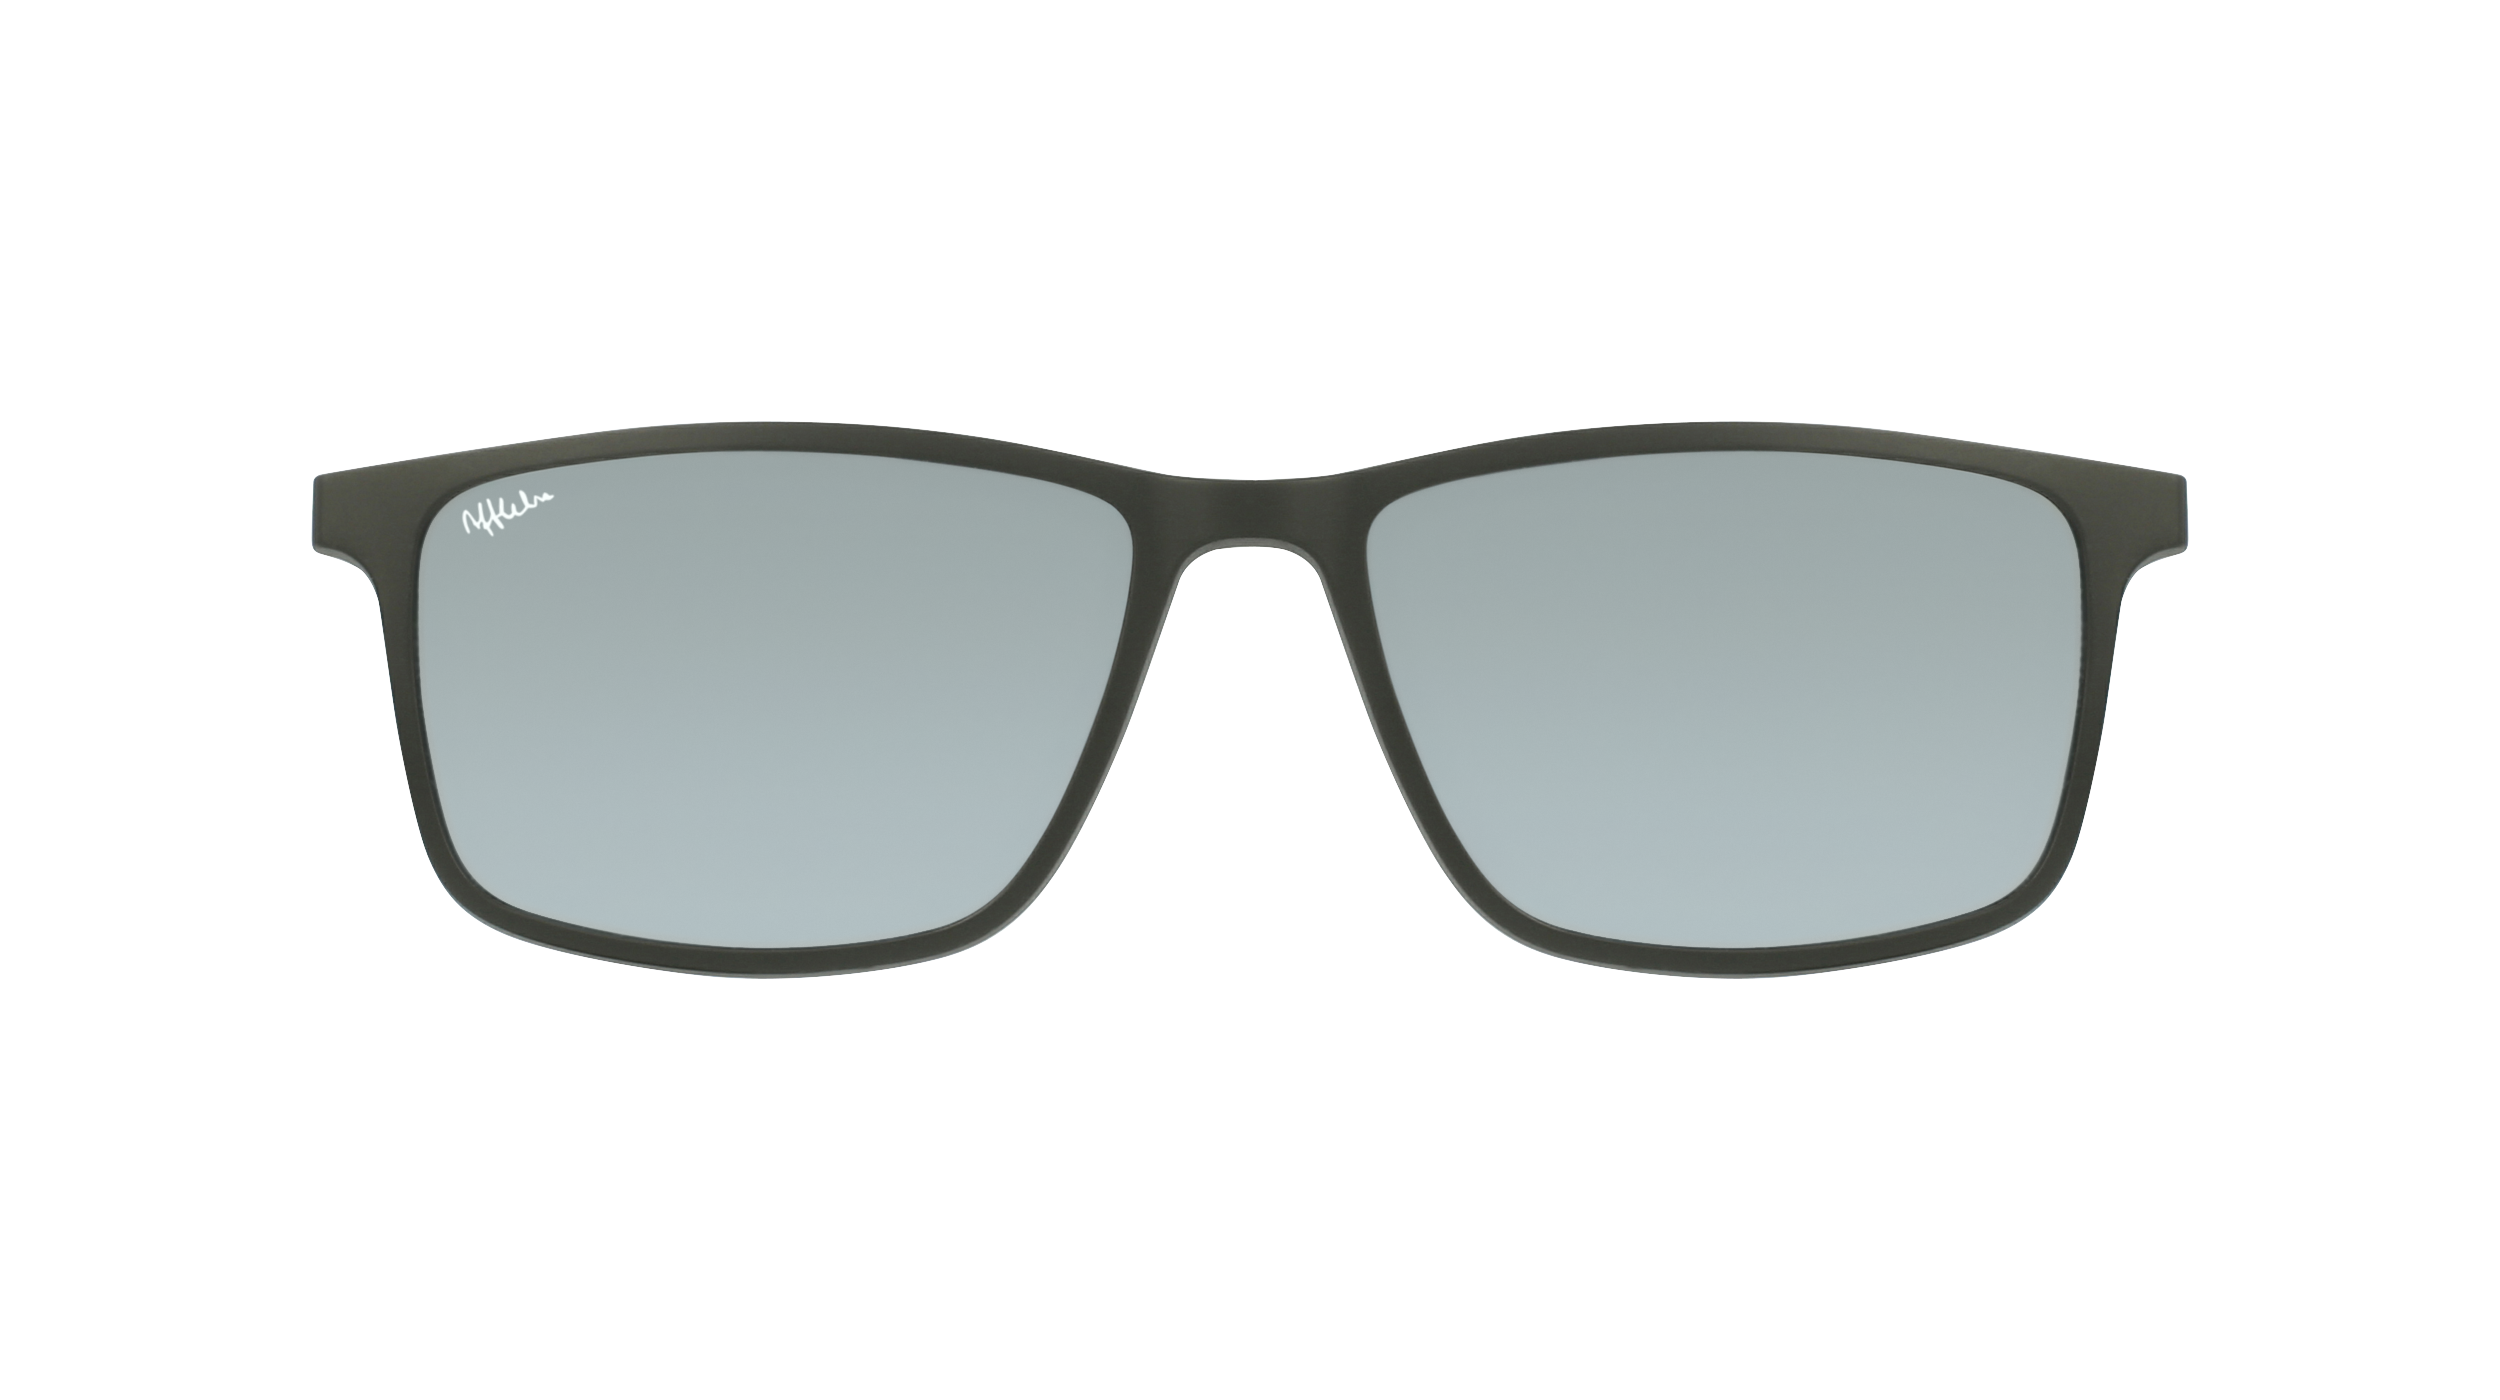 afflelou/france/products/smart_clip/clips_glasses/07630036457108.png